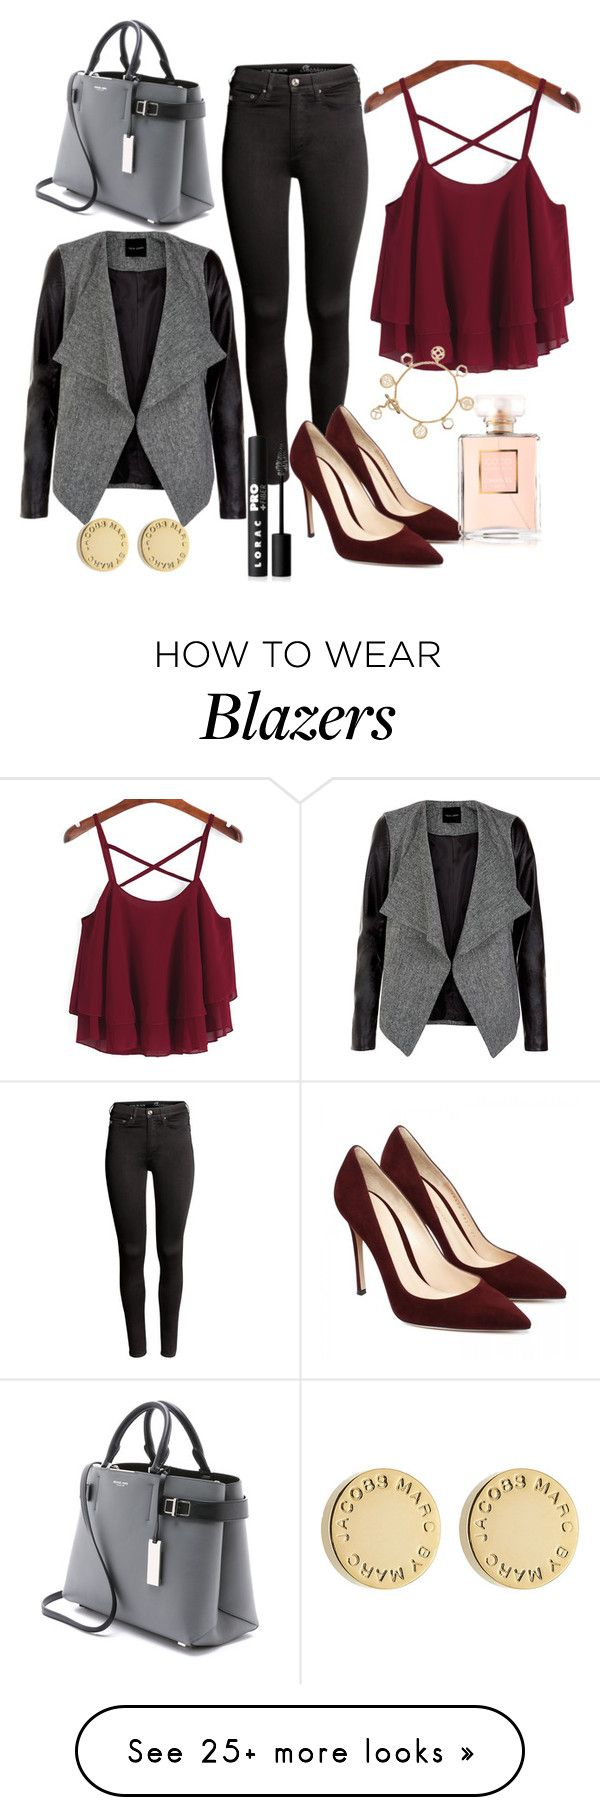 """""""Griis."""" by whateverconlamoda on Polyvore featuring H&M, LORAC, Tory Burch, Marc by Marc Jacobs and Michael Kors"""